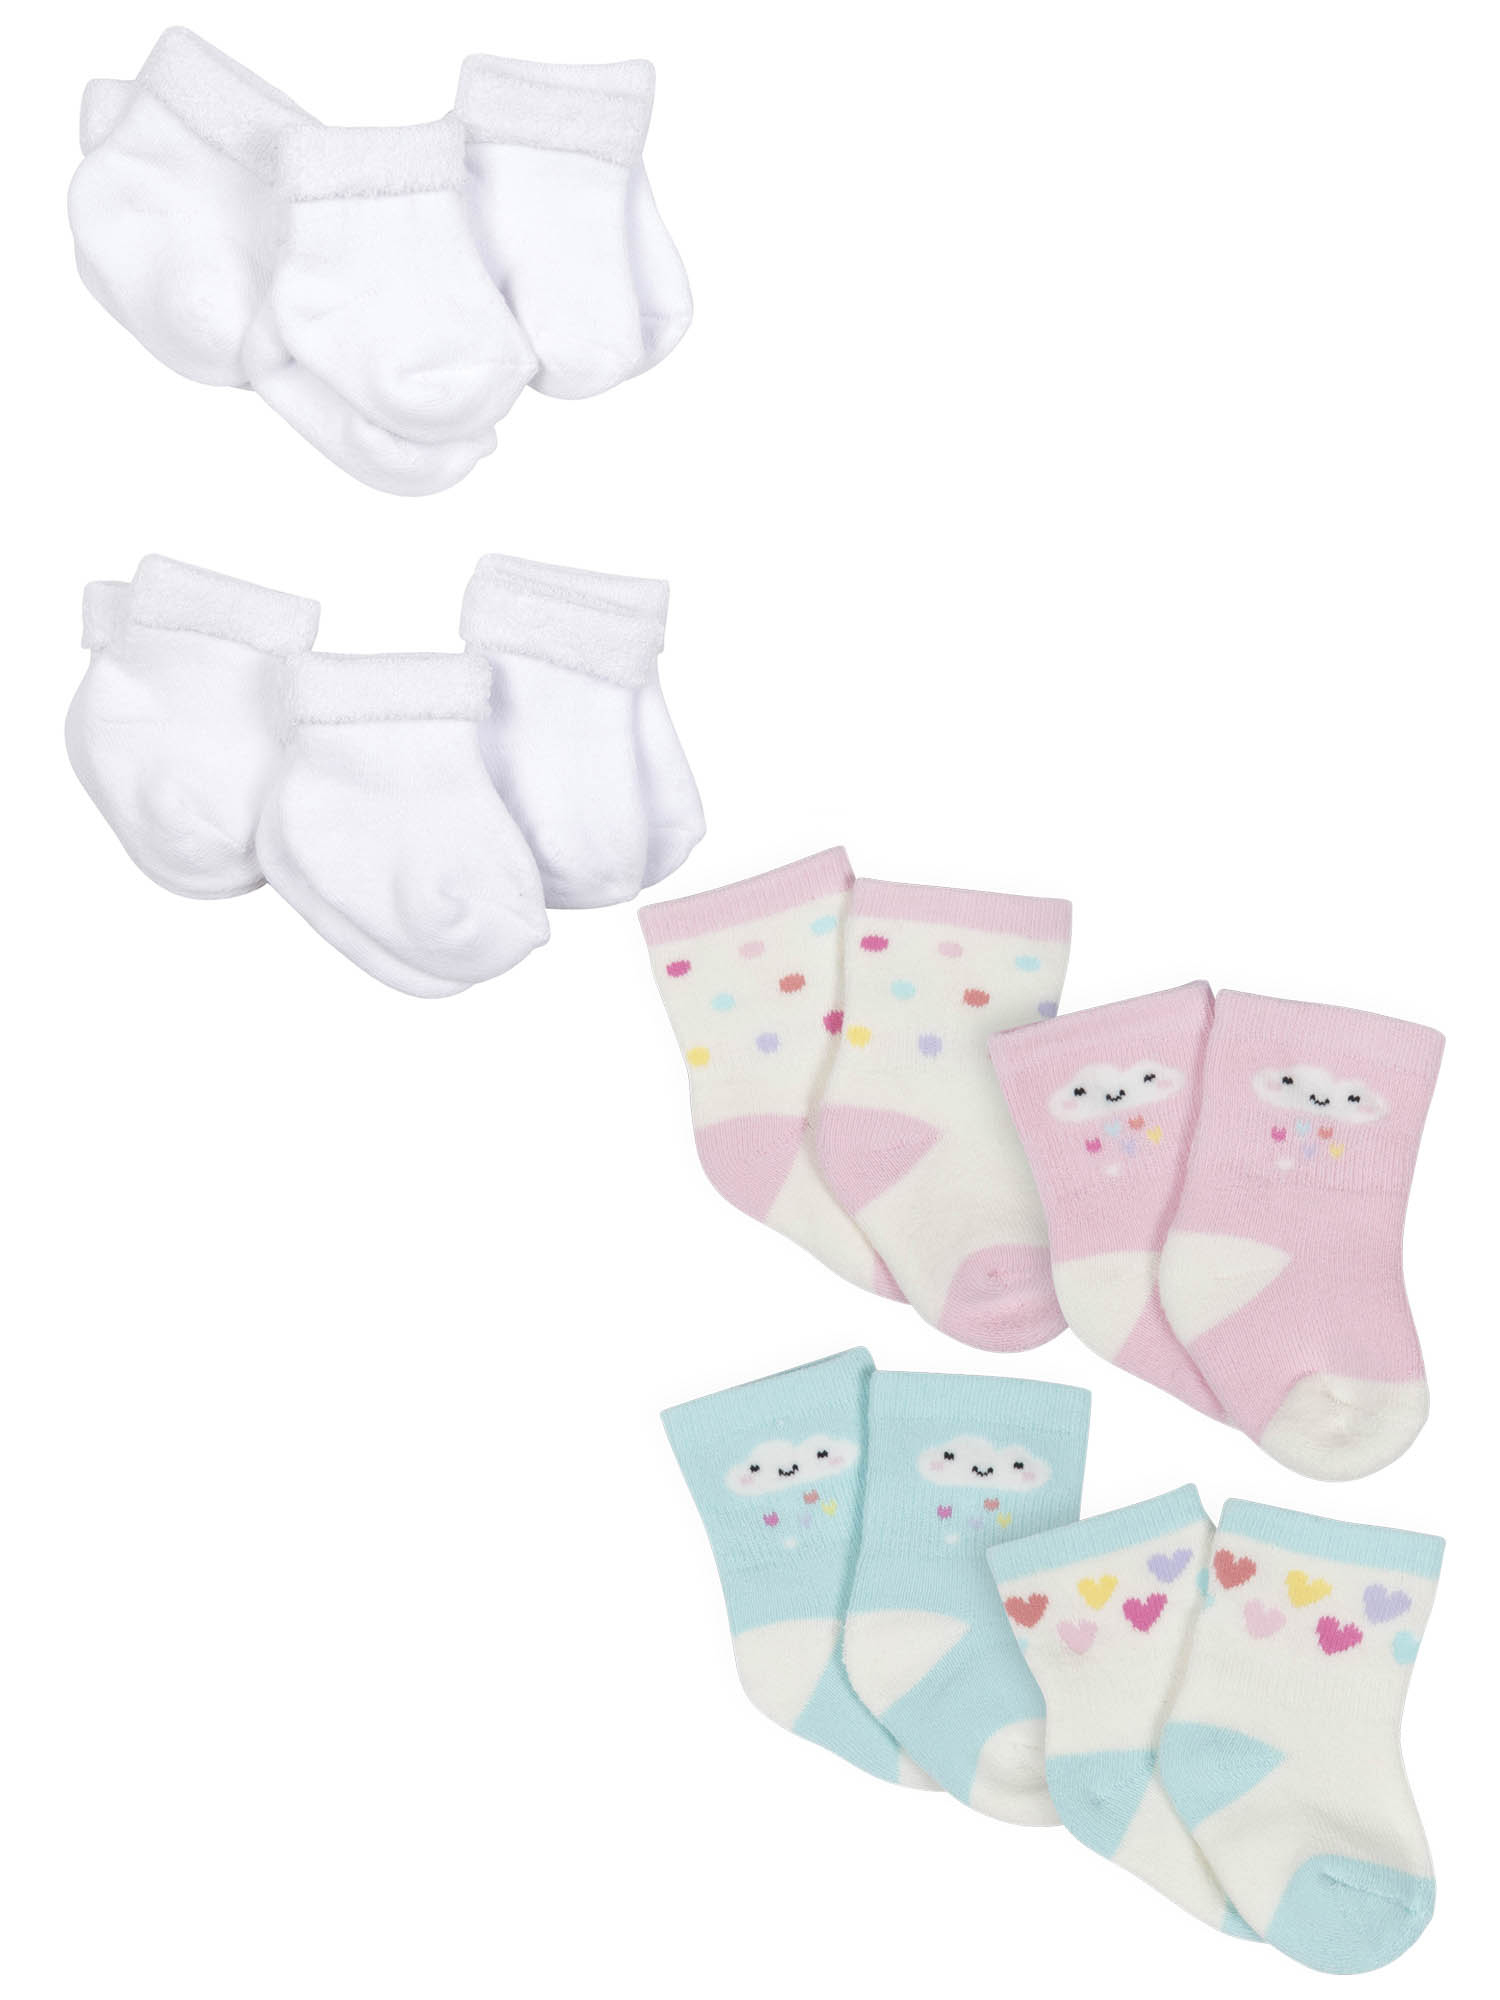 NEW Newborn Baby Girl Extra Thick Cotton Sock Tights NB grey So soft 0-6 mos